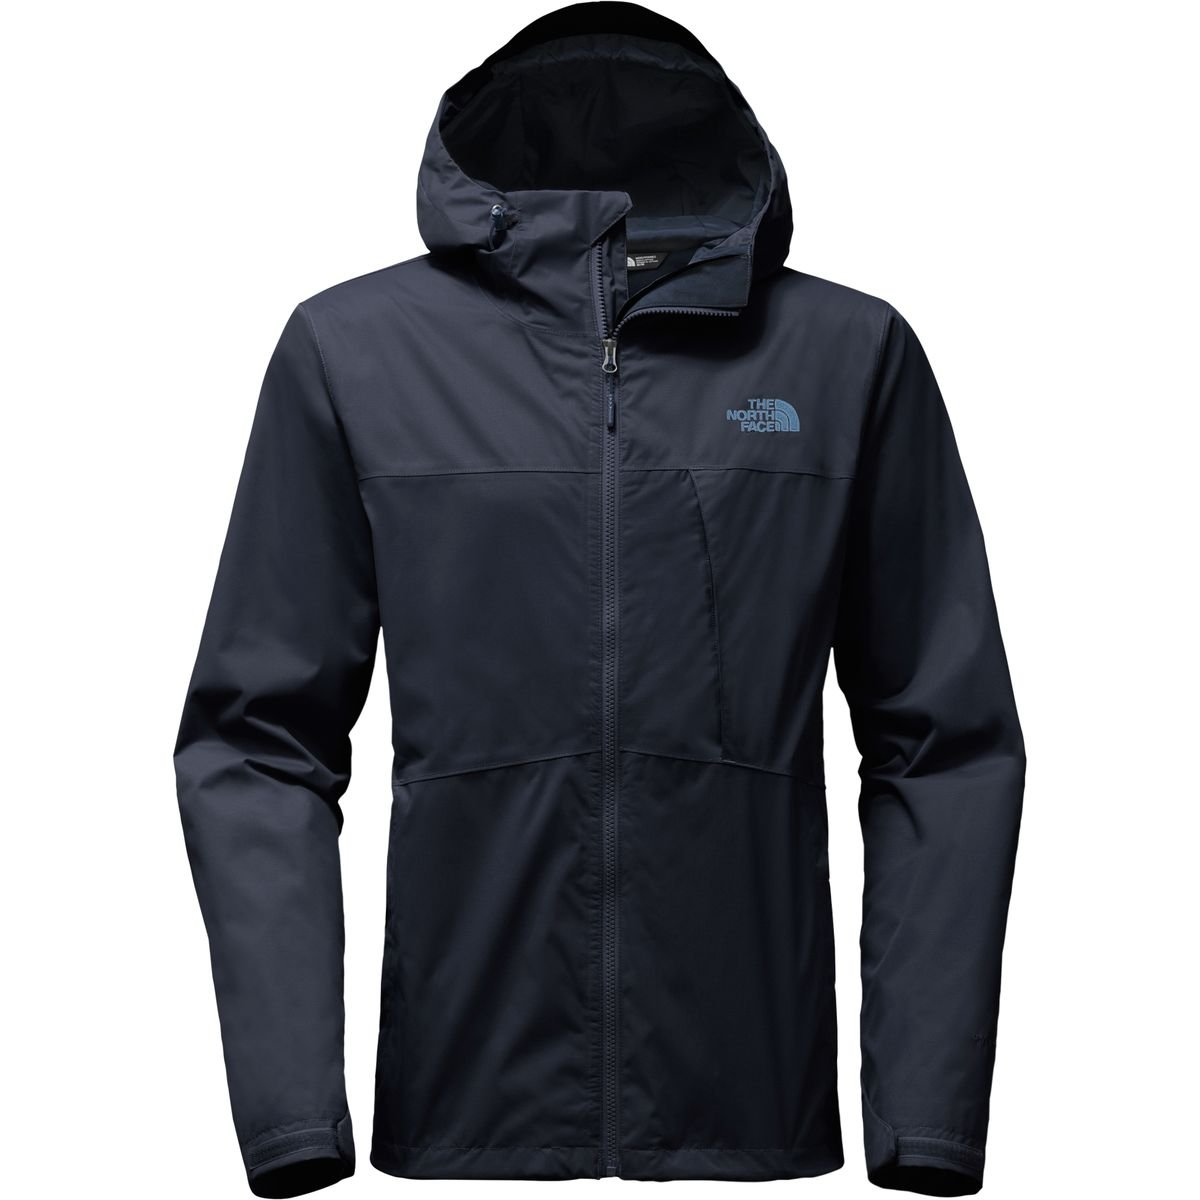 The North Face Men's Arrowood Tri Climate Jacket - Tall Urban Navy (X-Large) by The North Face